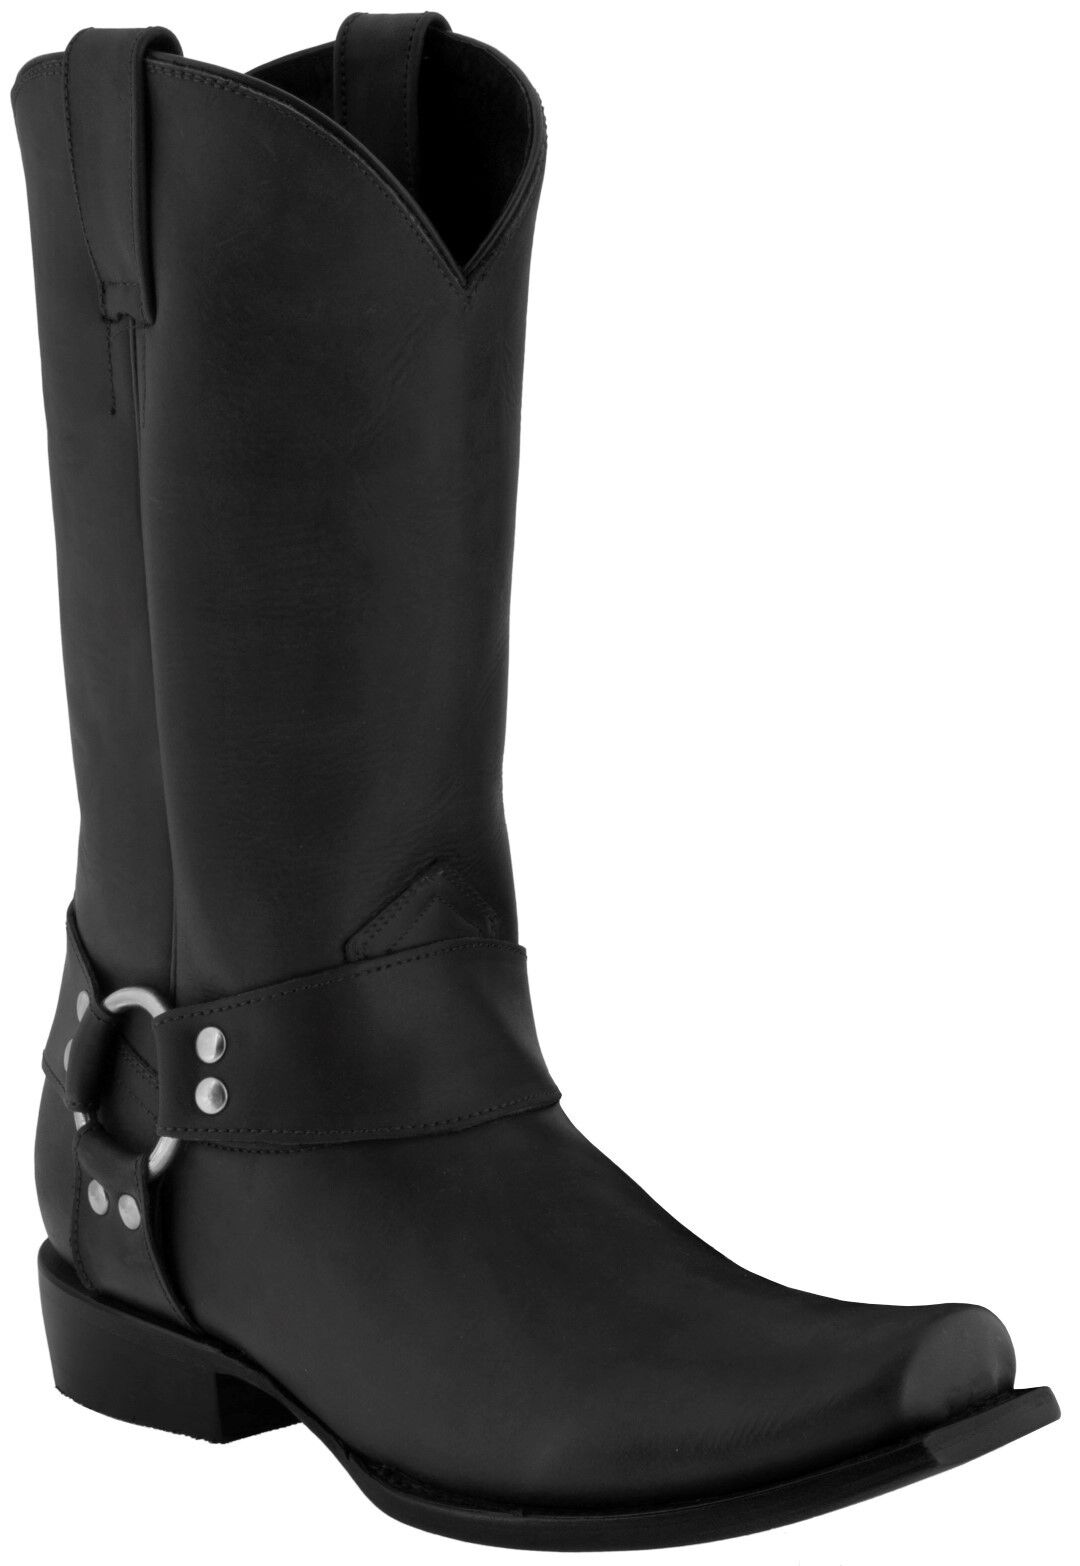 Mens Black Leather Rider Motorcycle Harness Riding Boots Square Toe